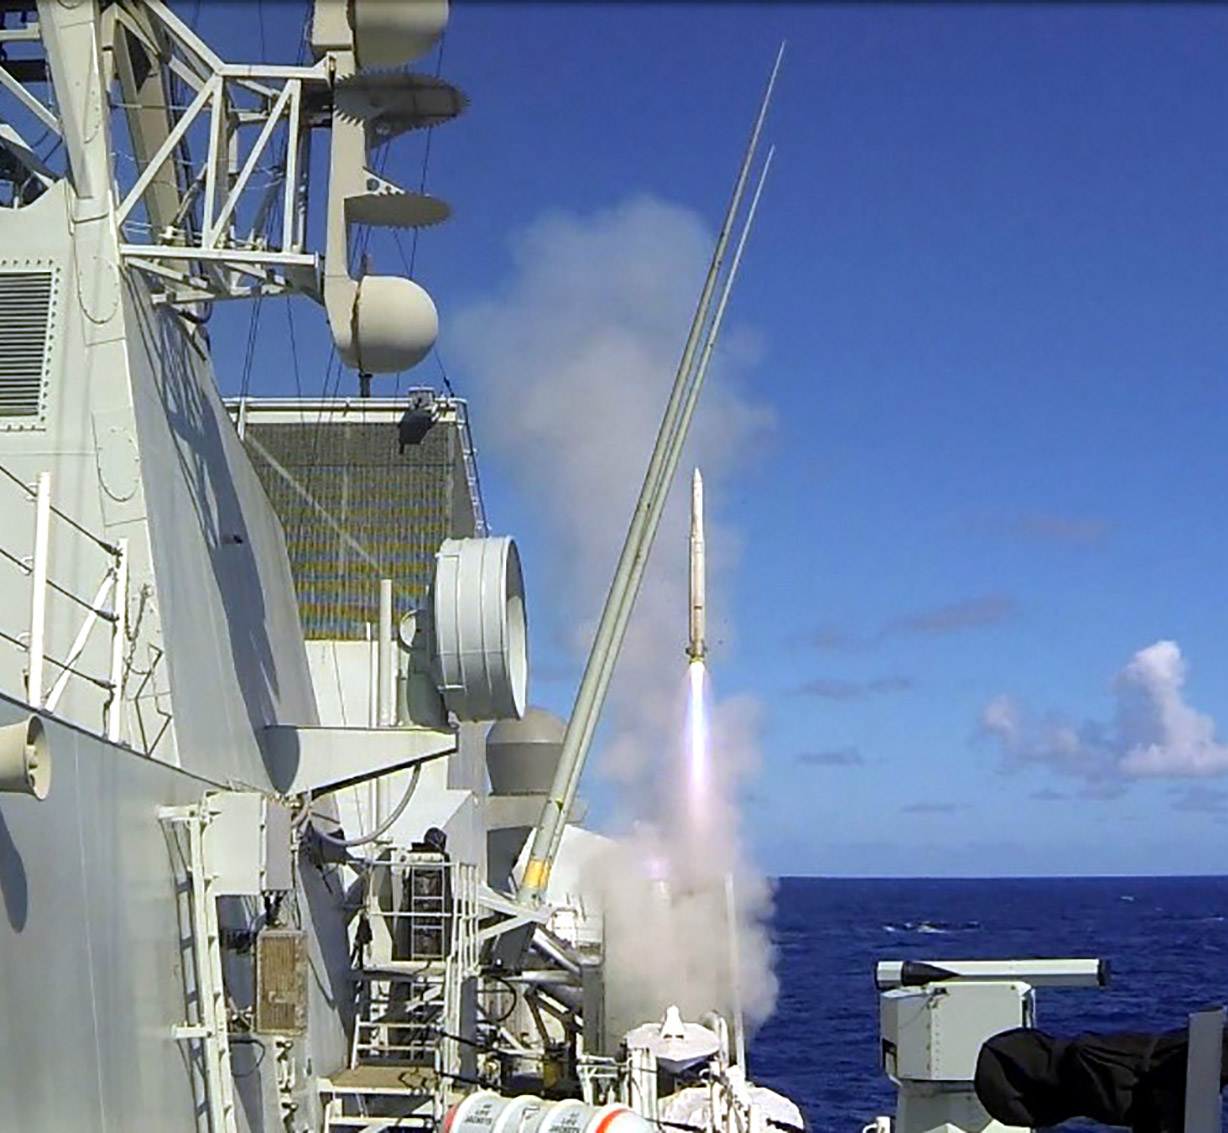 HMCS Vancouver conducts an Evolved Sea Sparrow Missile (ESSM) firing as part of the At Sea Demonstration 16 exercise in the Pacific Ocean on July 16, 2016, during RIMPAC 16. The RCN has fired more ESSMs than any of the 10 ESSM consortium nations.